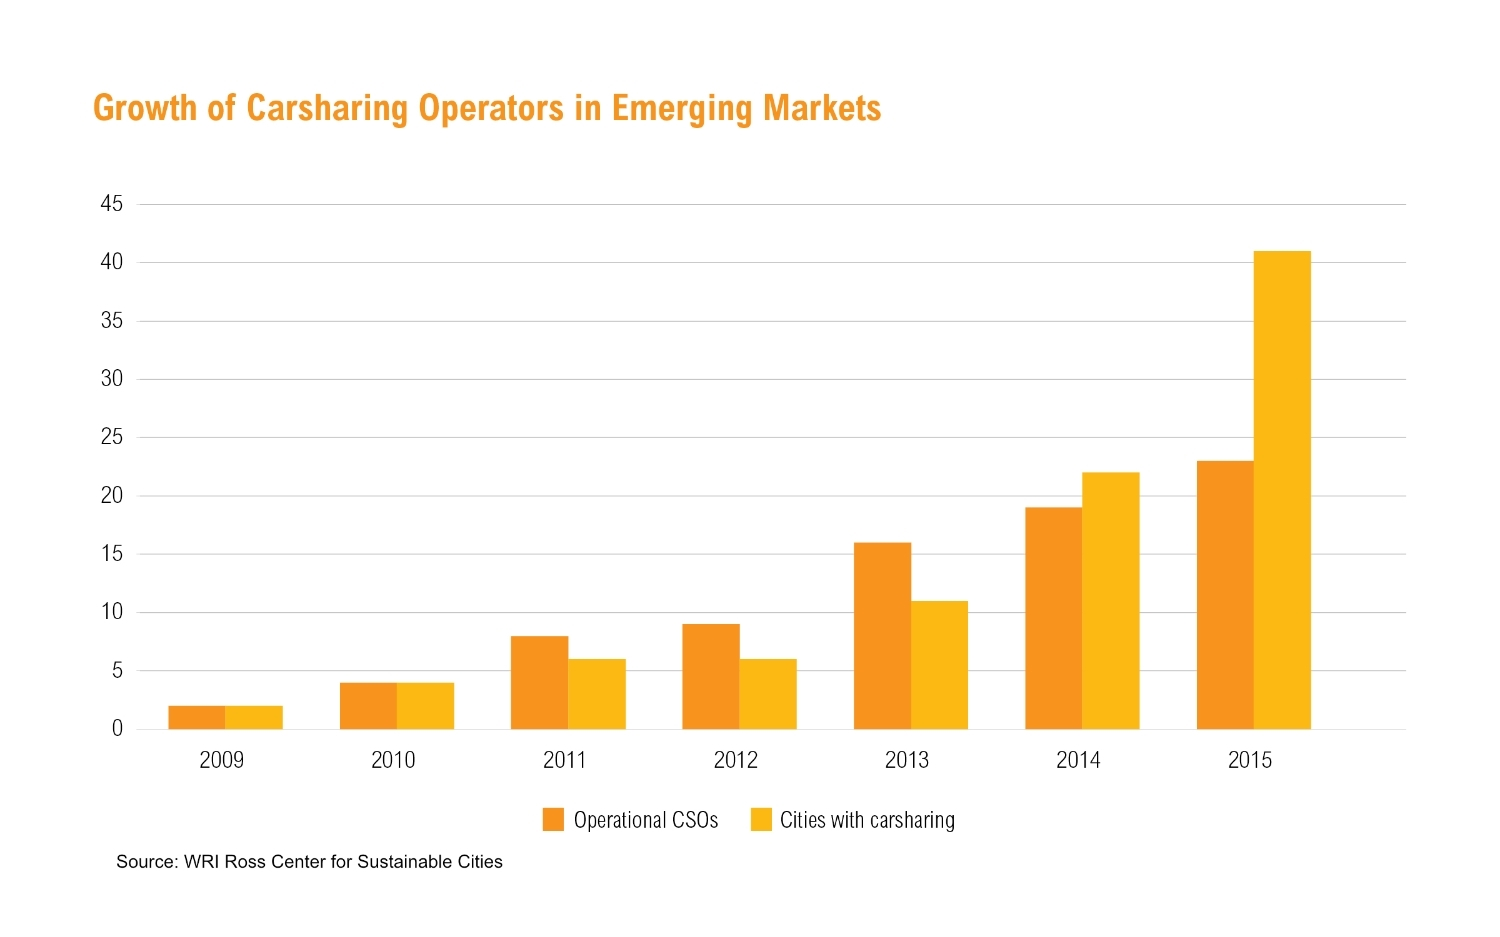 CARSHARING HAS SEEN TREMENDOUS GROWTH IN EMERGING ECONOMIES IN THE LAST FEW YEARS.